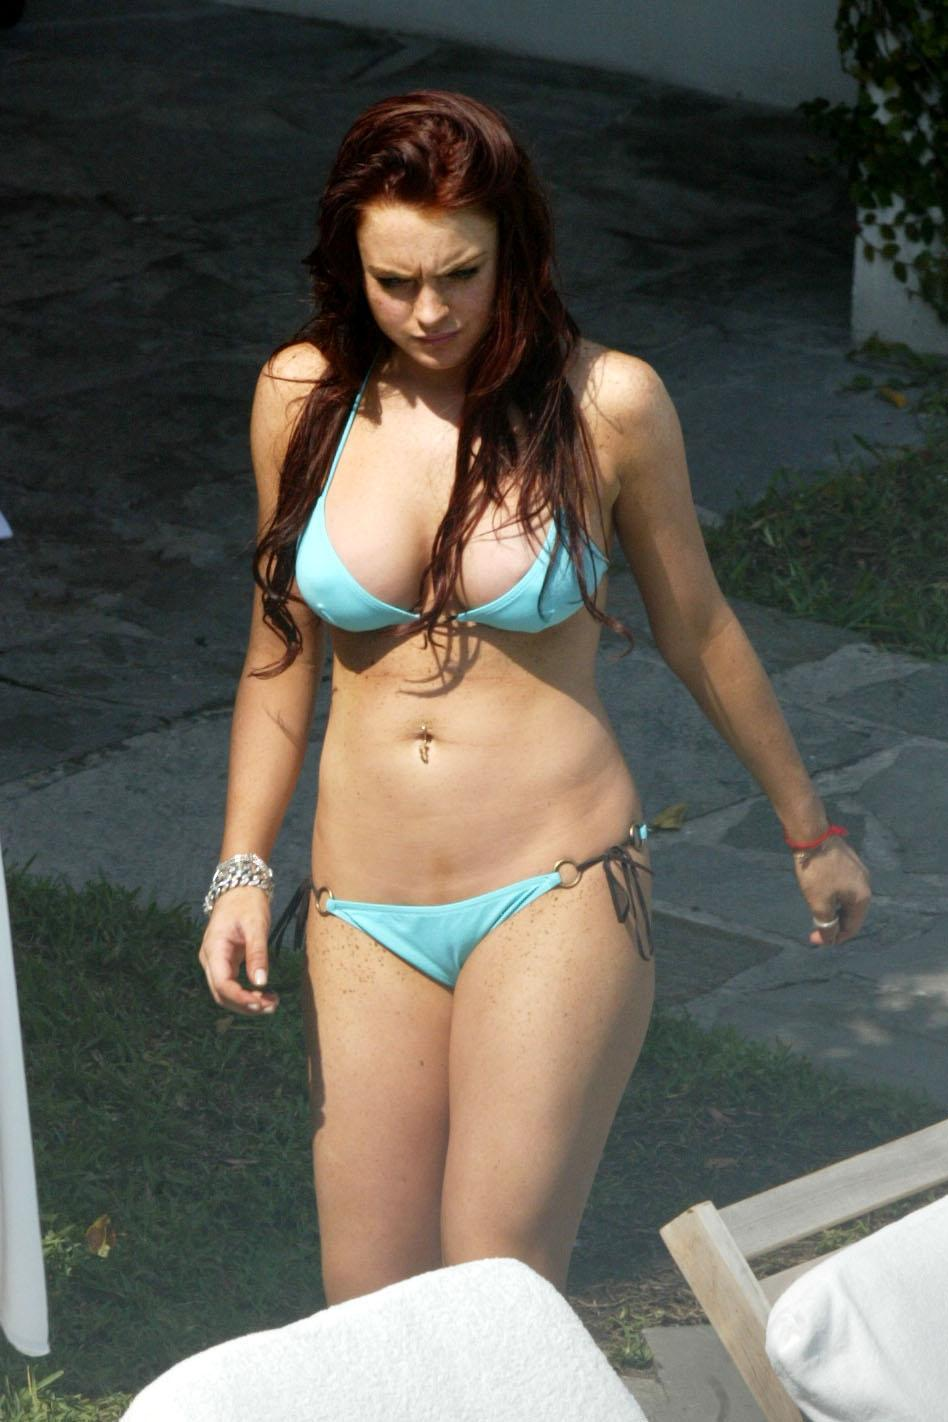 lindsay lohan hot bikini photos disney star universe